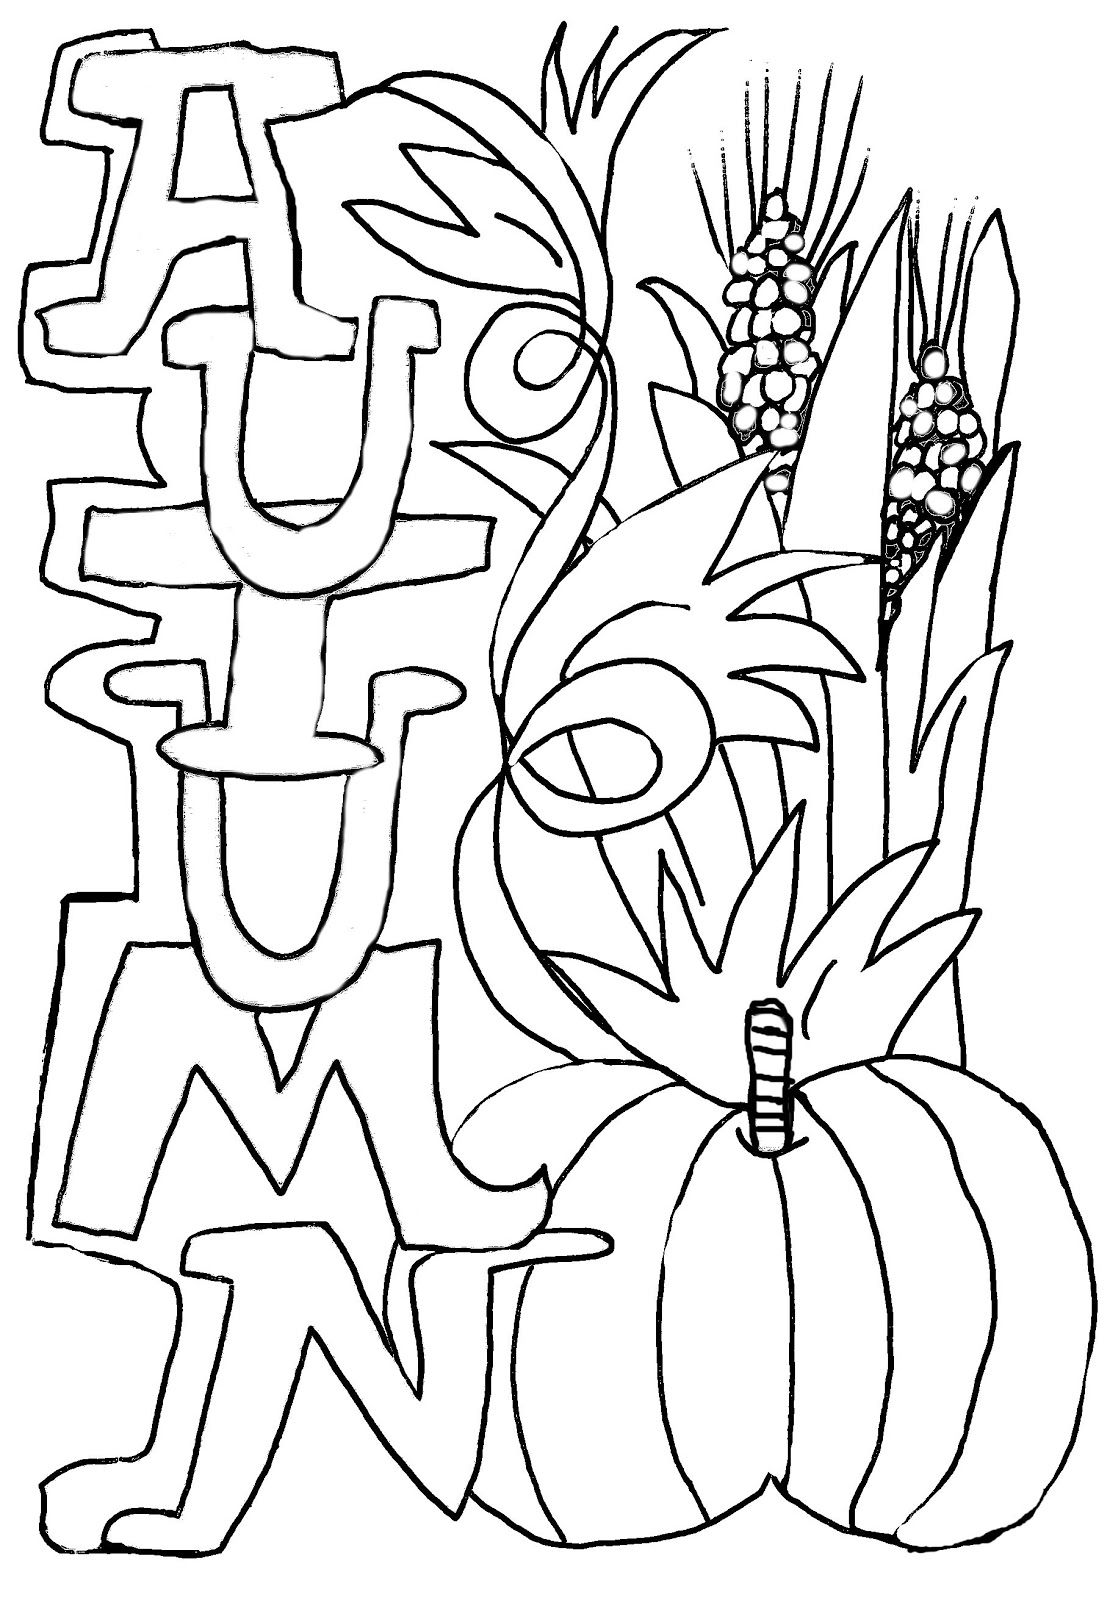 treasure box drawing for jesus the word